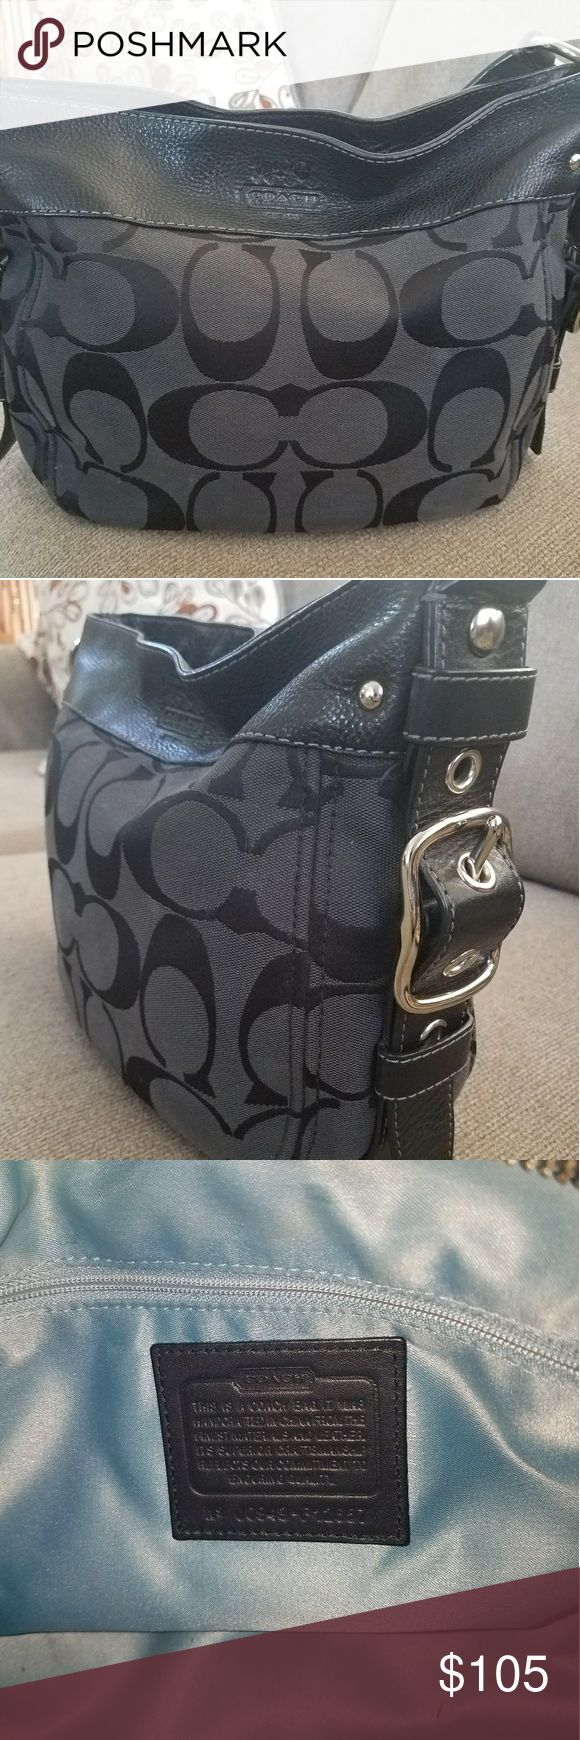 Black coach purse Barely used. Cleaning the inside so it looks new. Authentic coach purse. Coach Bags Shoulder Bags